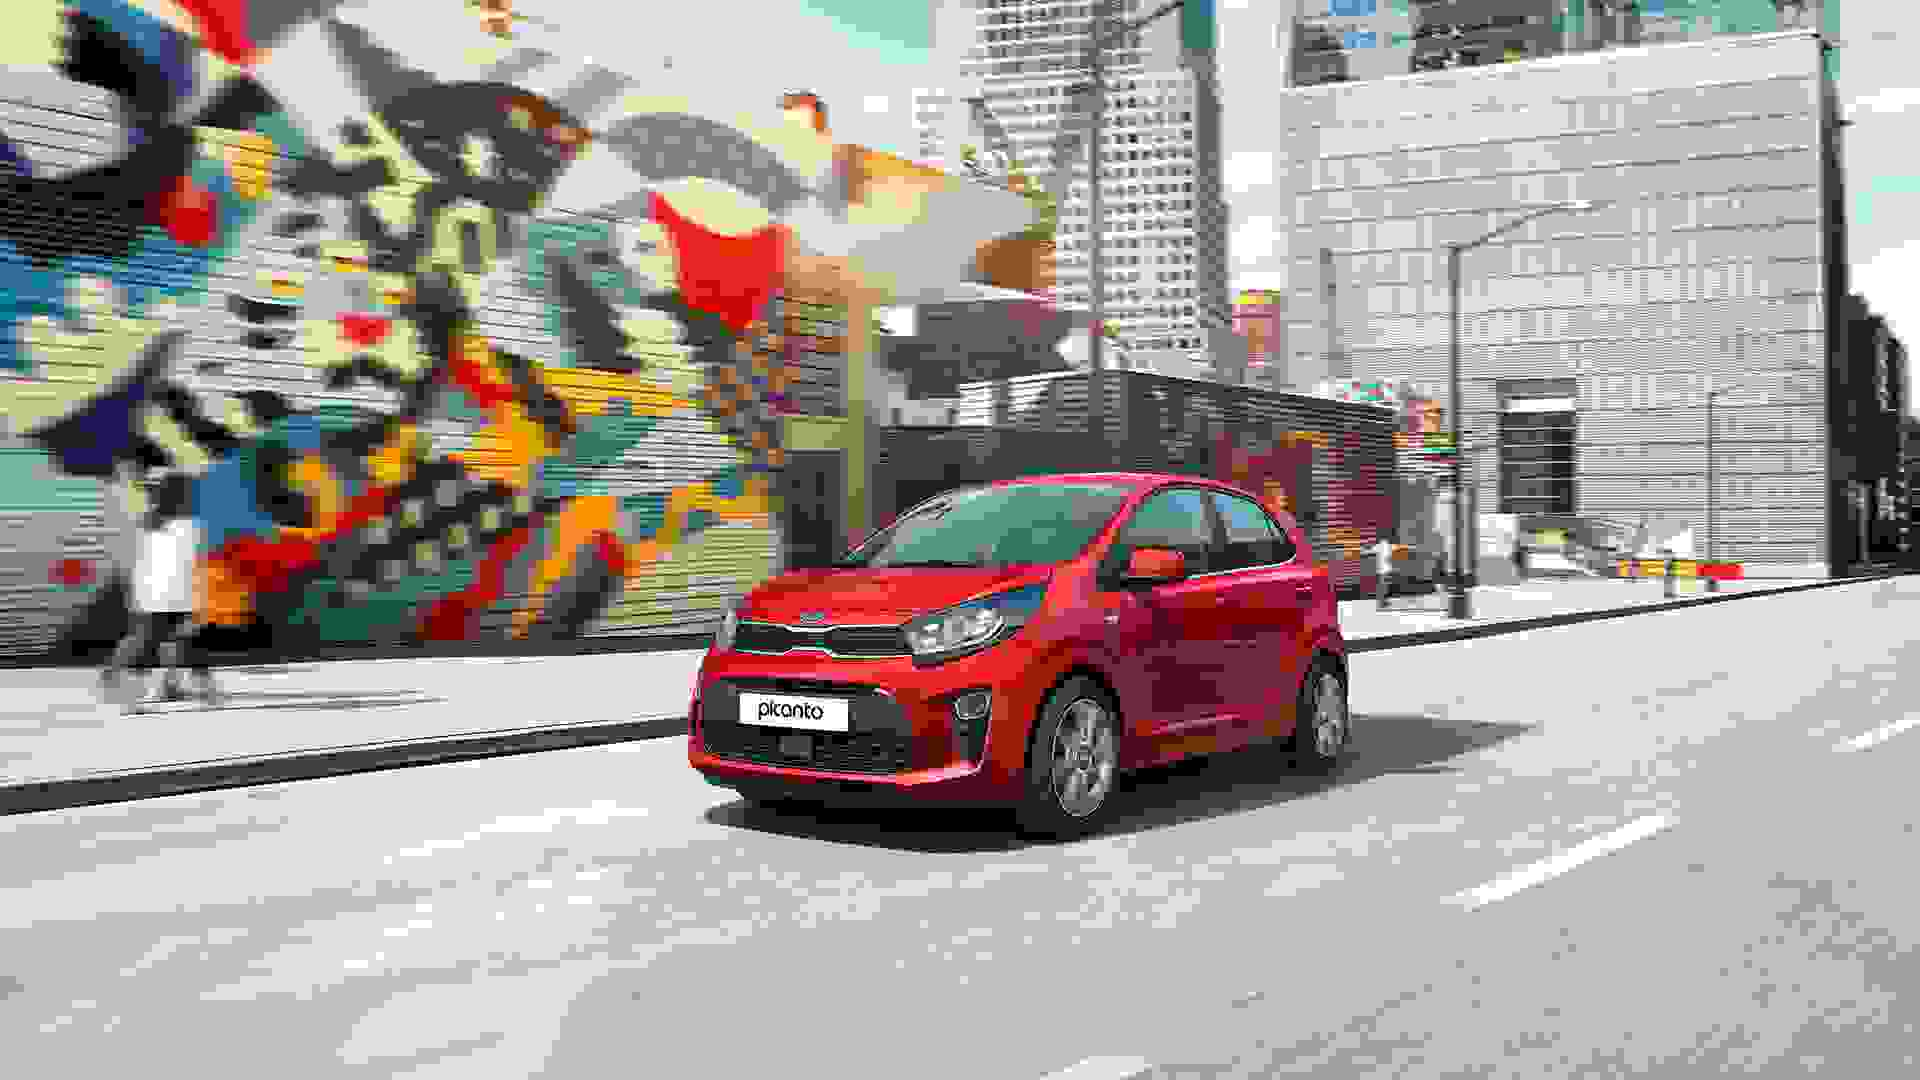 Baseline 1920X1080 Fullhd PICANTO Outside 314 Front